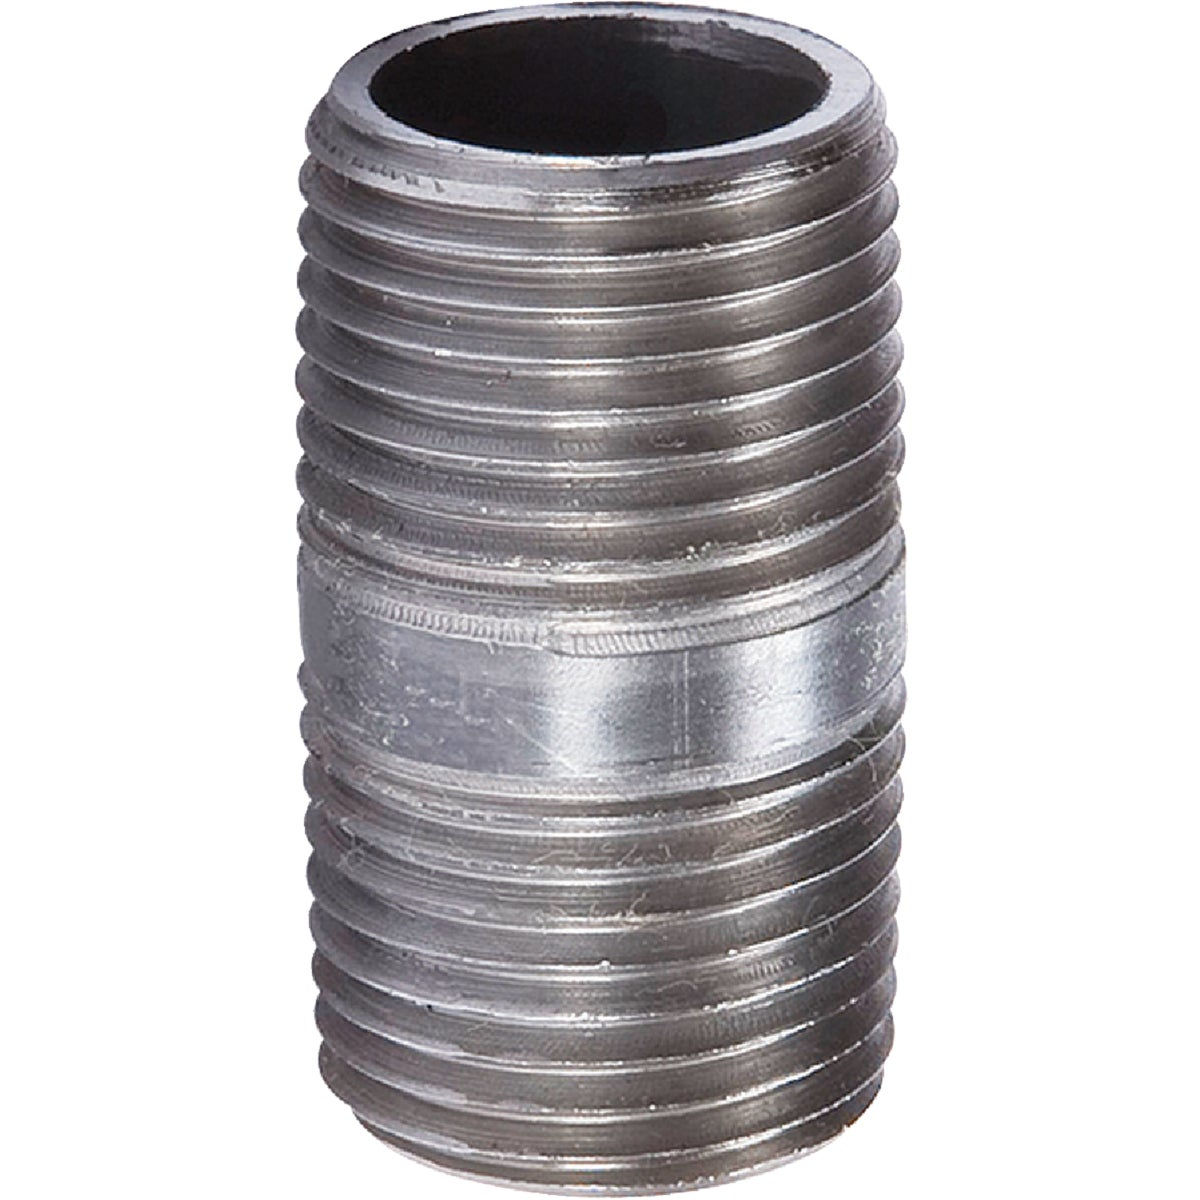 1/8XCLOSE GALV NIPPLE - 10100 by Southland Pipe Nippl